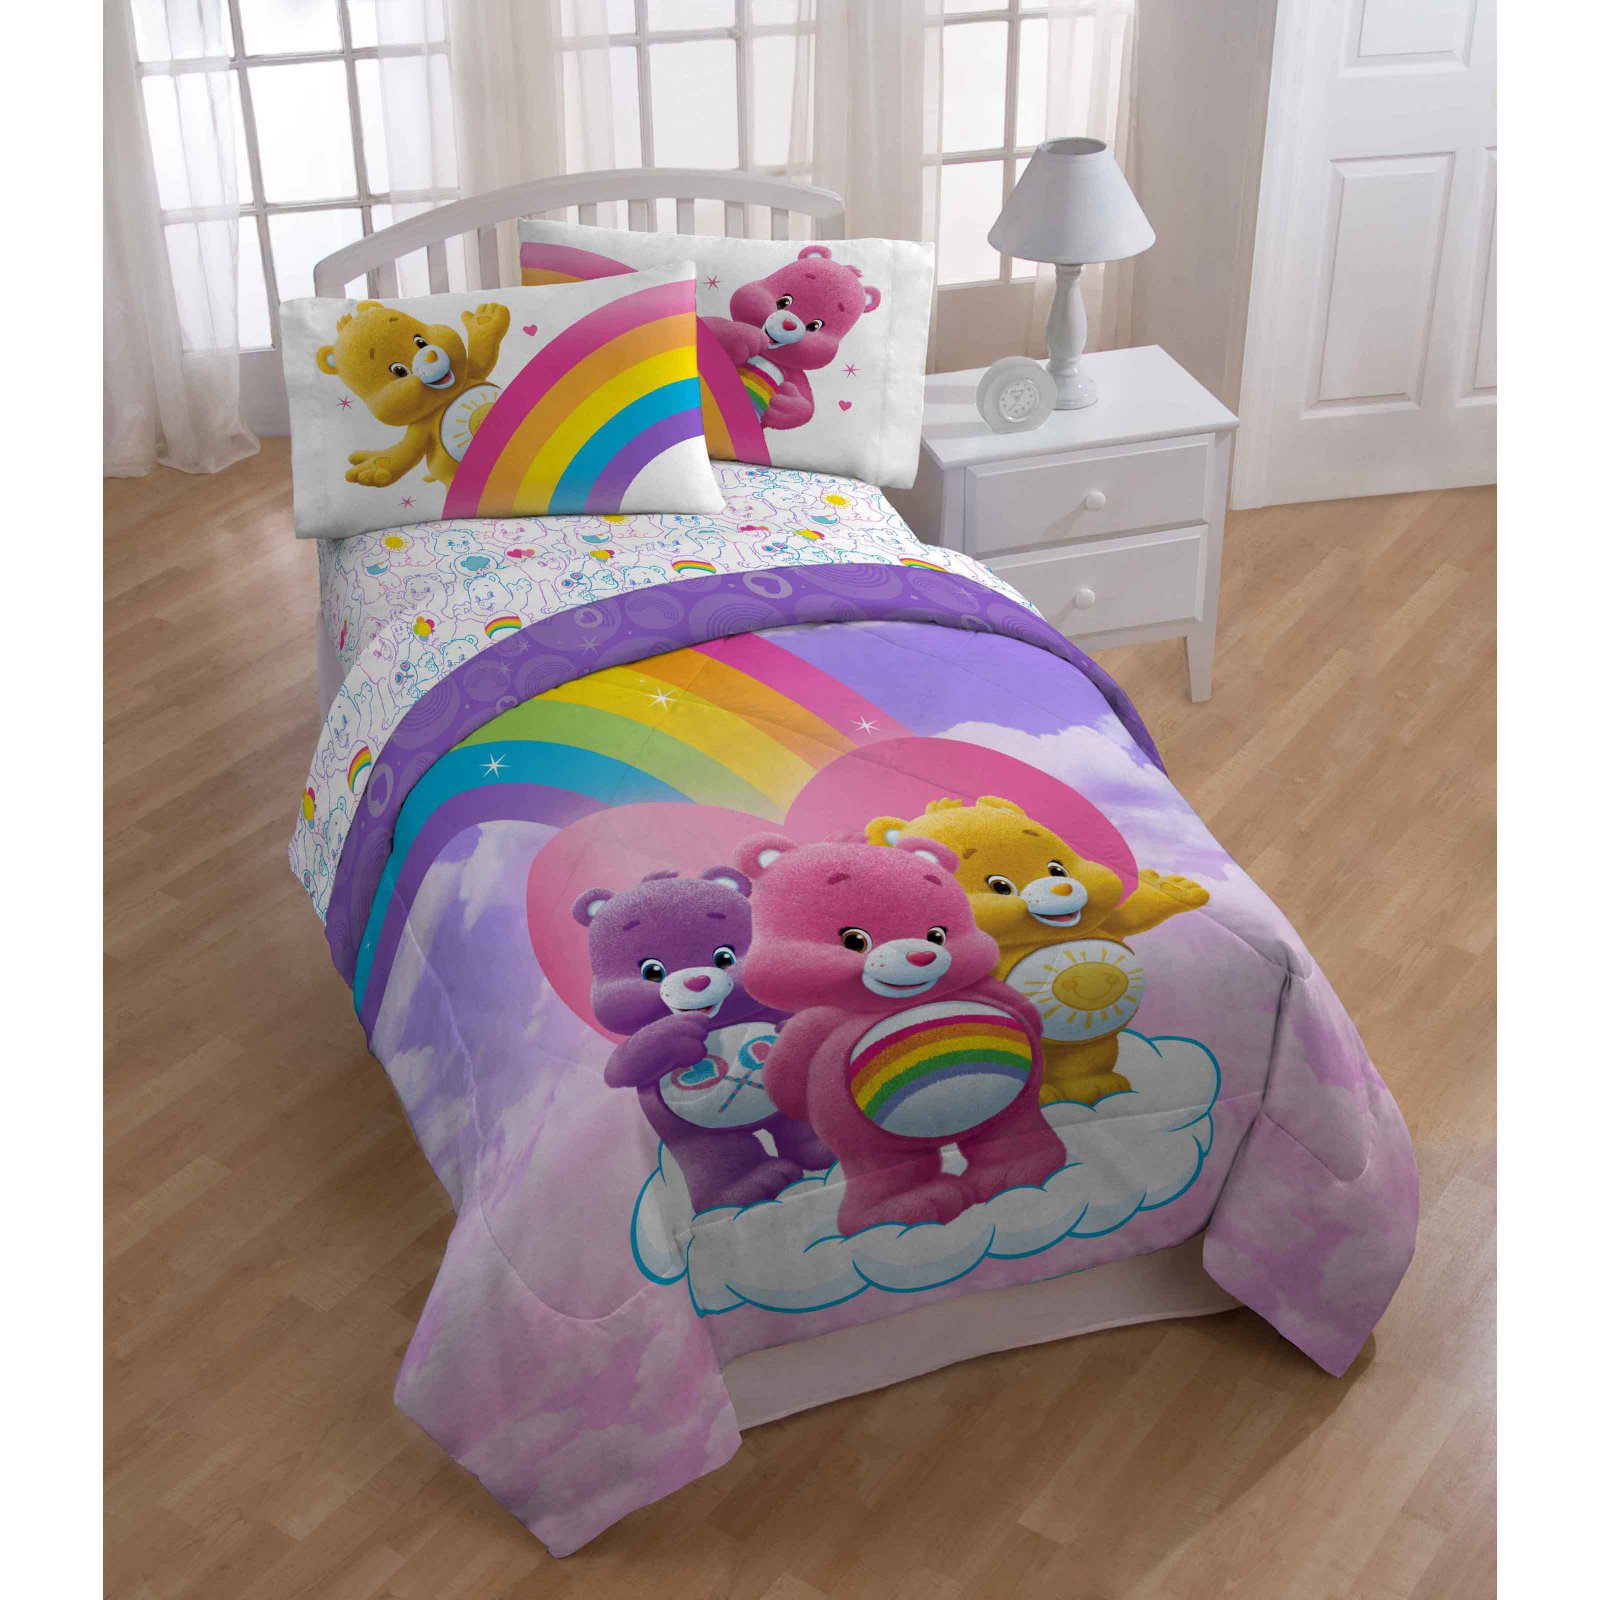 Care Bears Rainbow Day Reversible Comforter by American Greeting